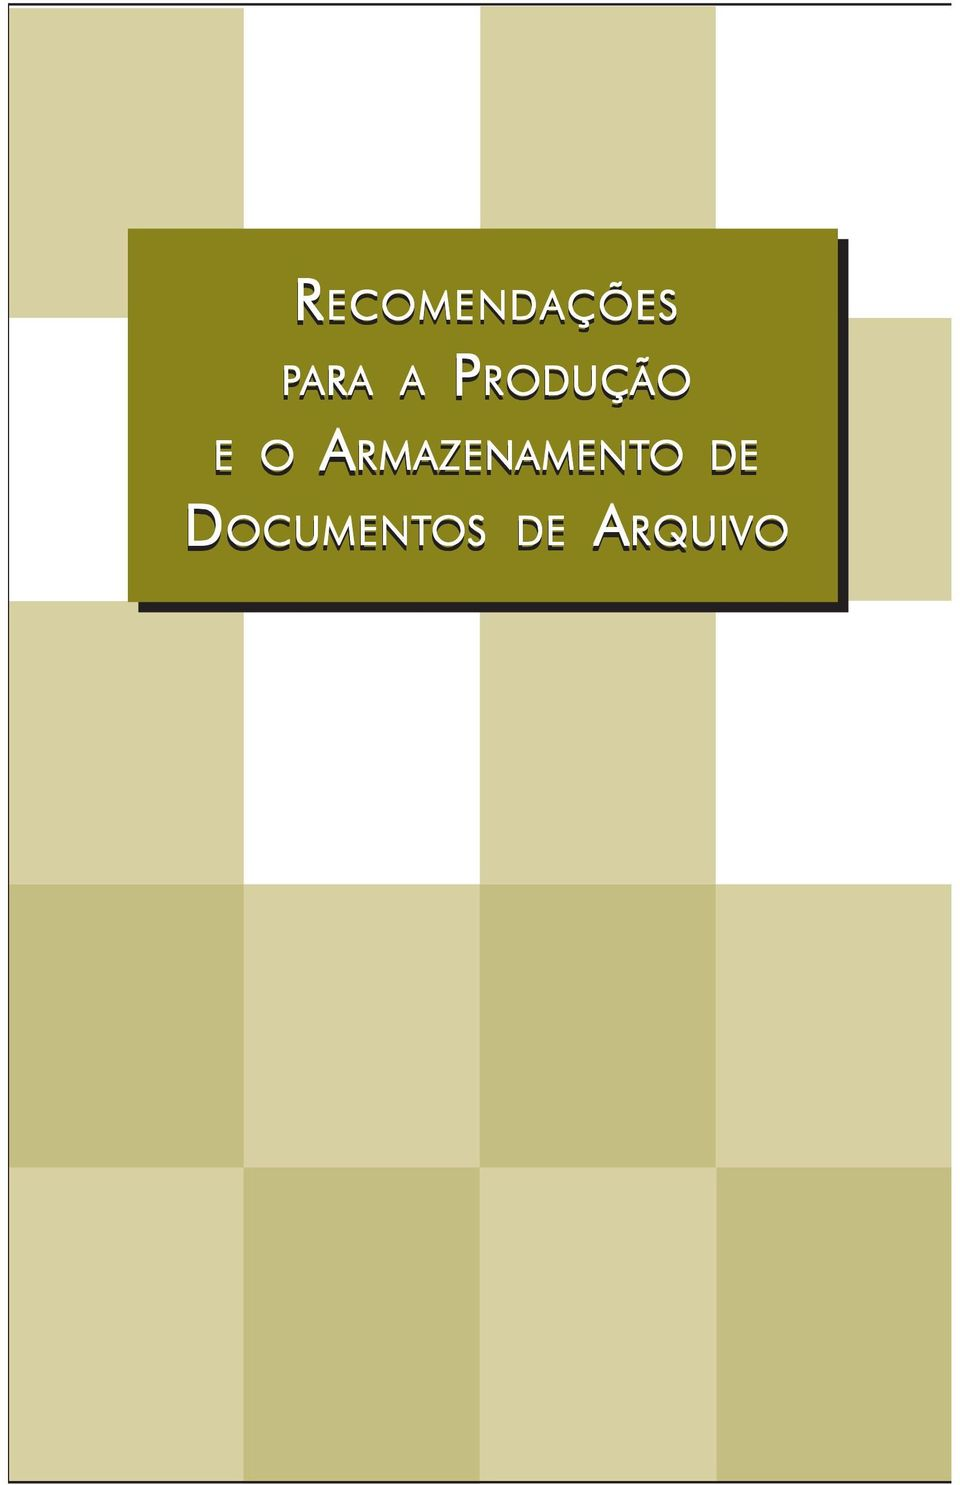 RMAZENAMENTO DE DOCUMENT